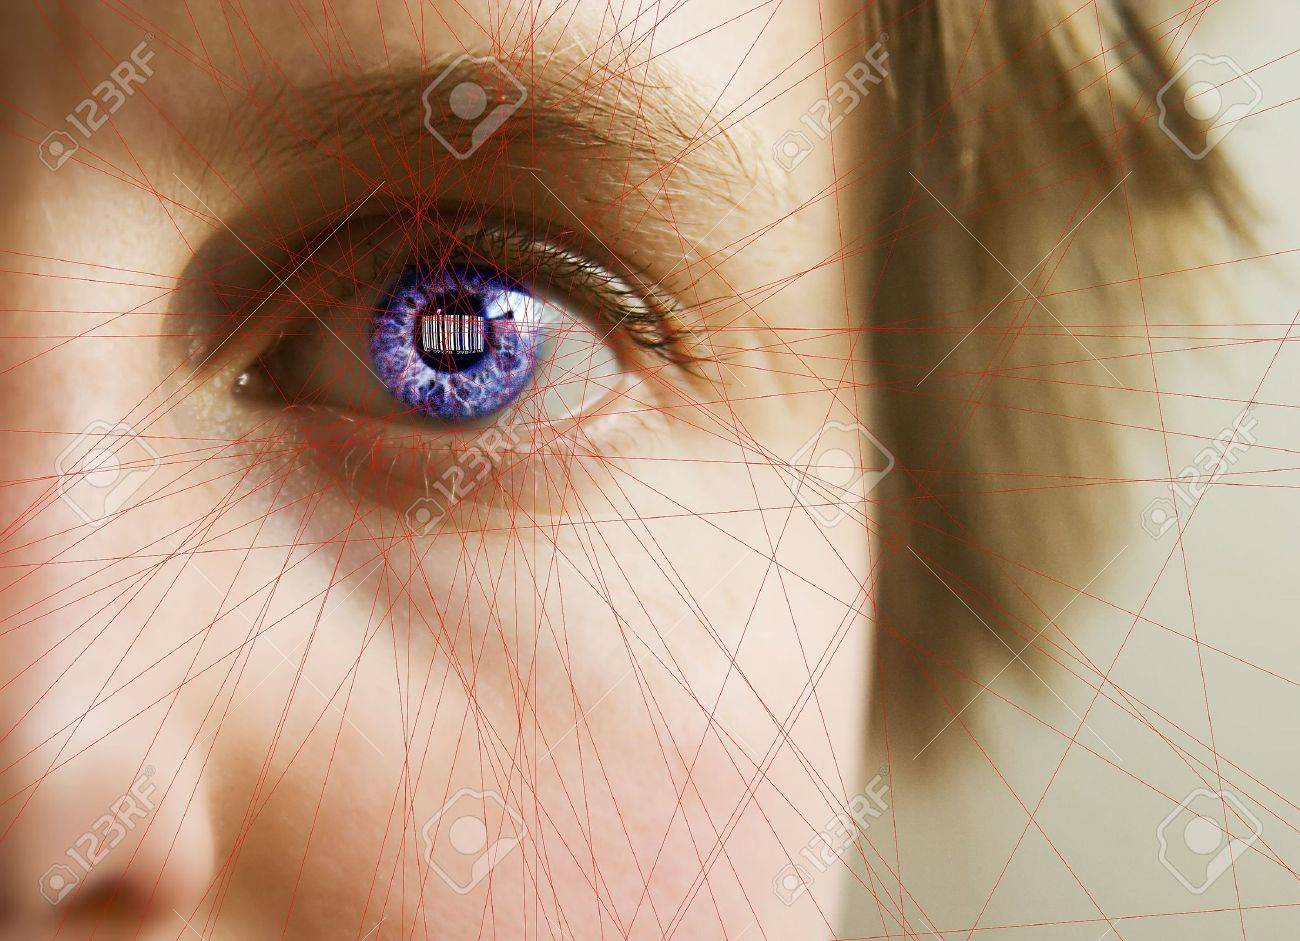 Red laser lines scanning the face and retina of a woman.  The iris is overlayed with a bar code.  Security, big brother, privacy concept image. Stock Photo - 342769